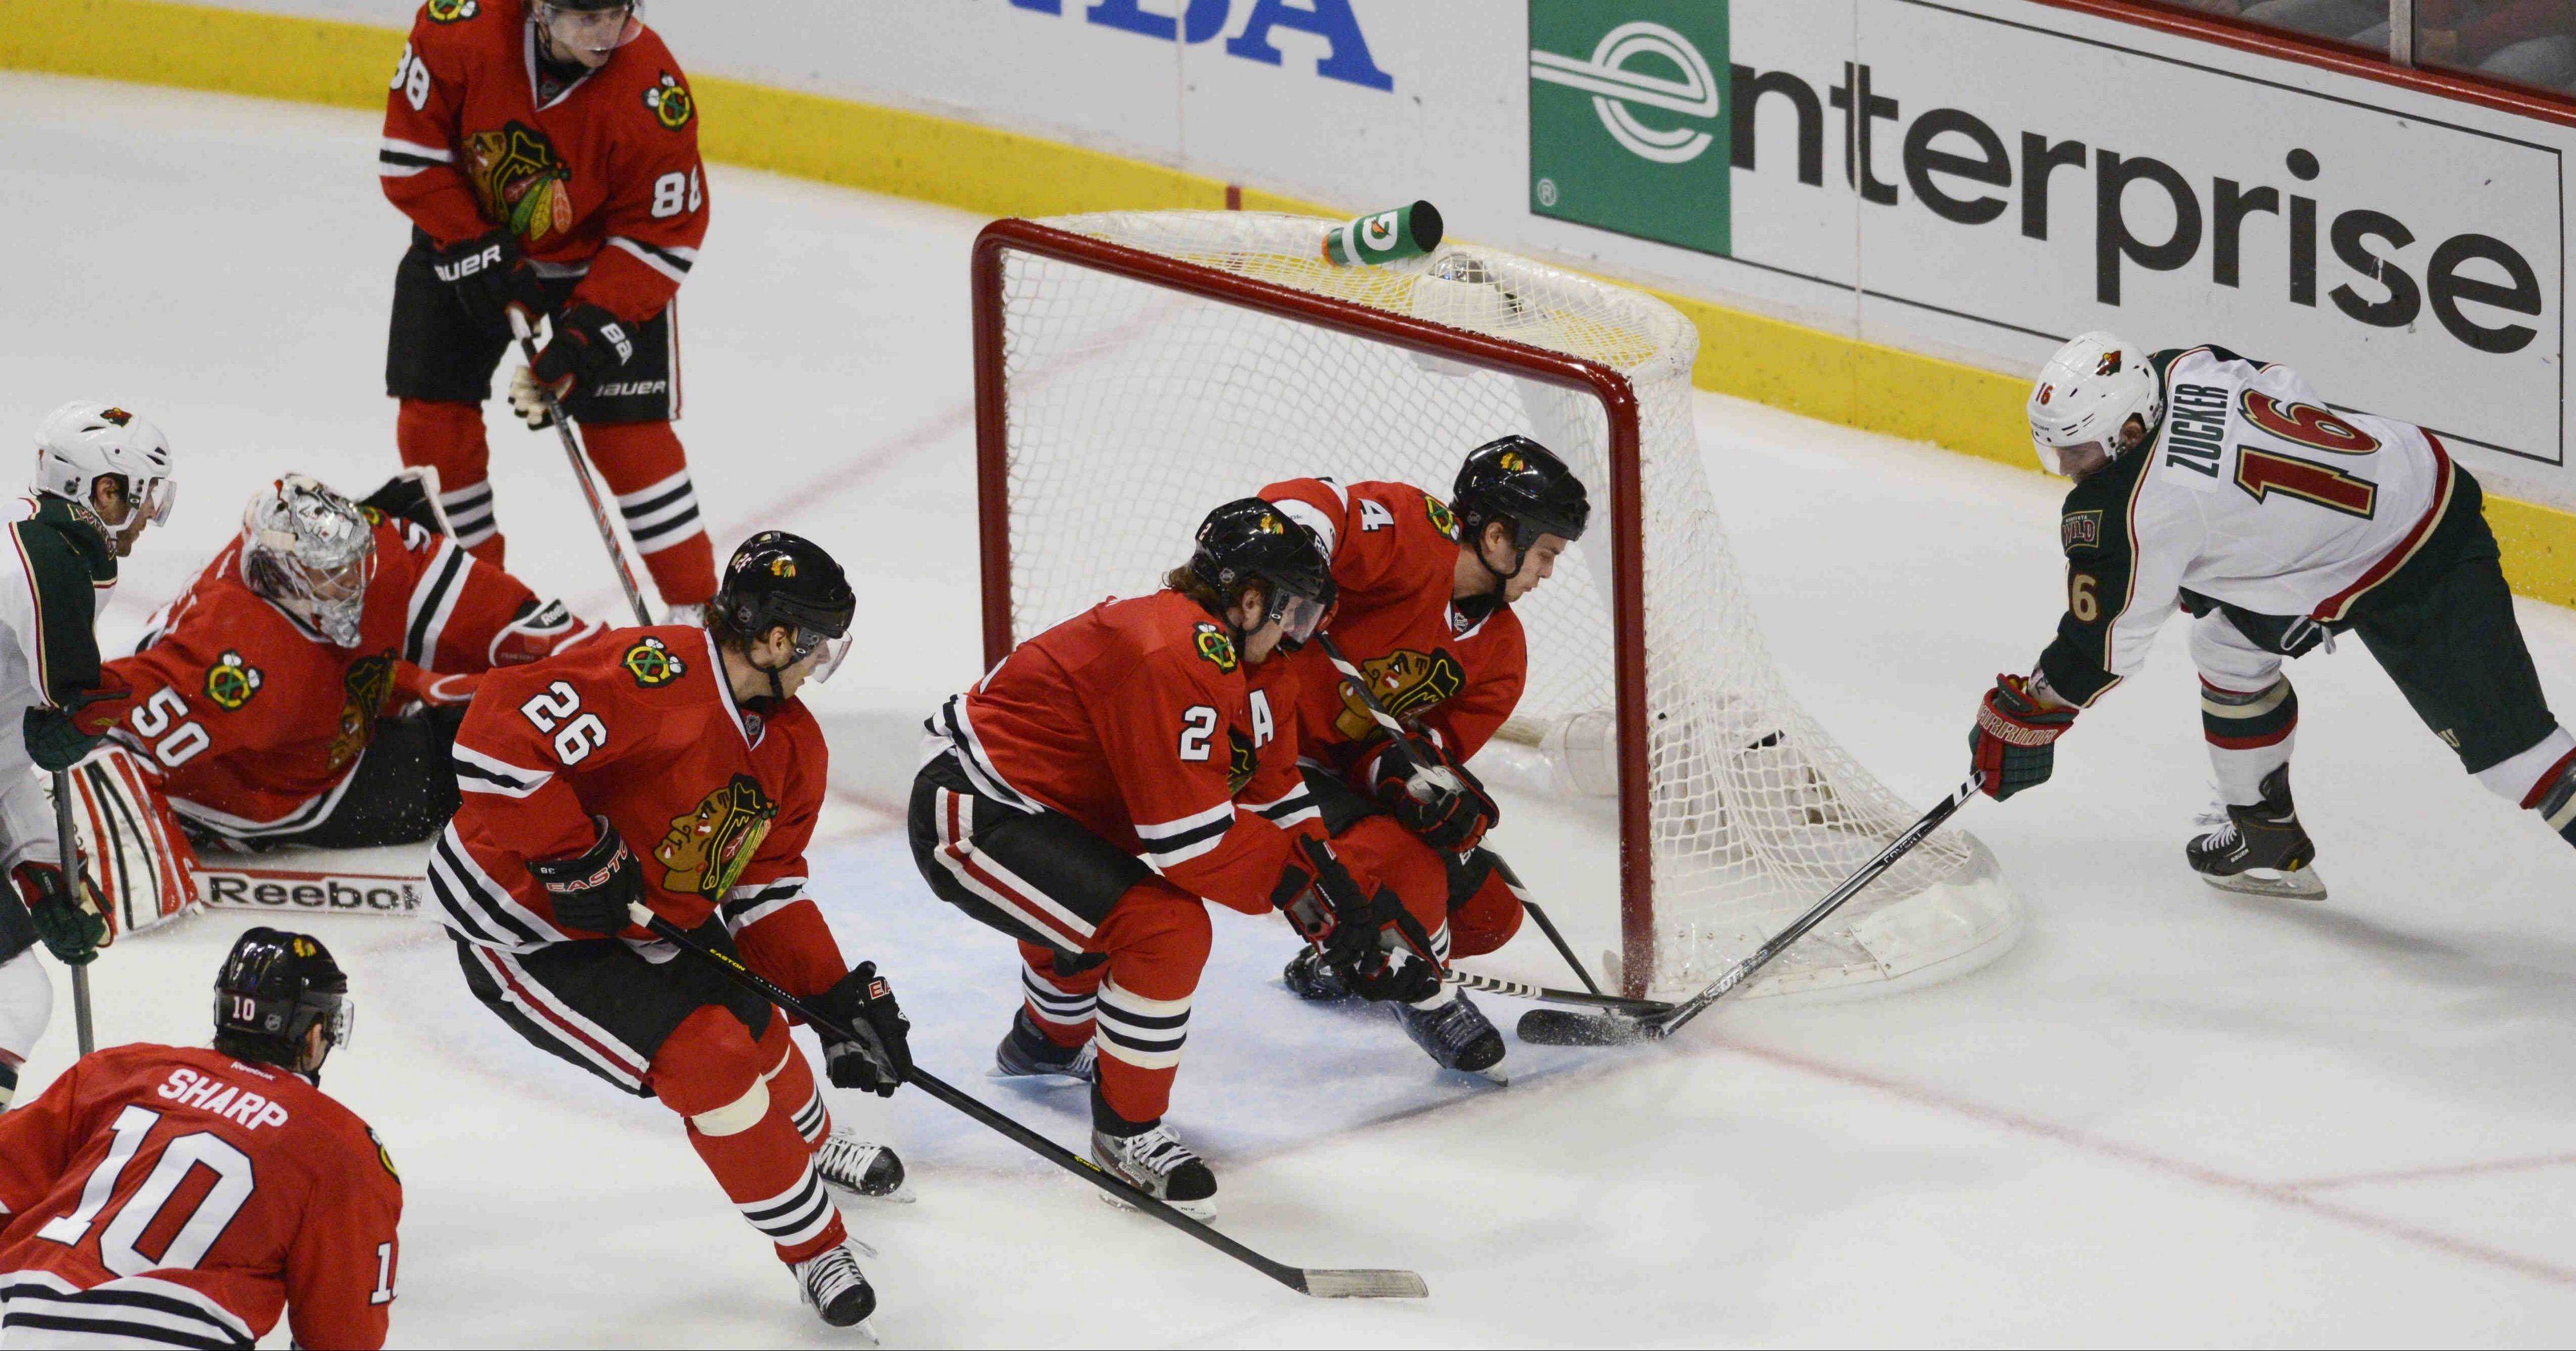 Niklas Hjalmarsson and Duncan Keith defend the goal against Minnesota left wing Jason Zucker as goalie Corey Crawford scrambled back into position Tuesday in Game 1 of the Western Conference first-round playoff series.